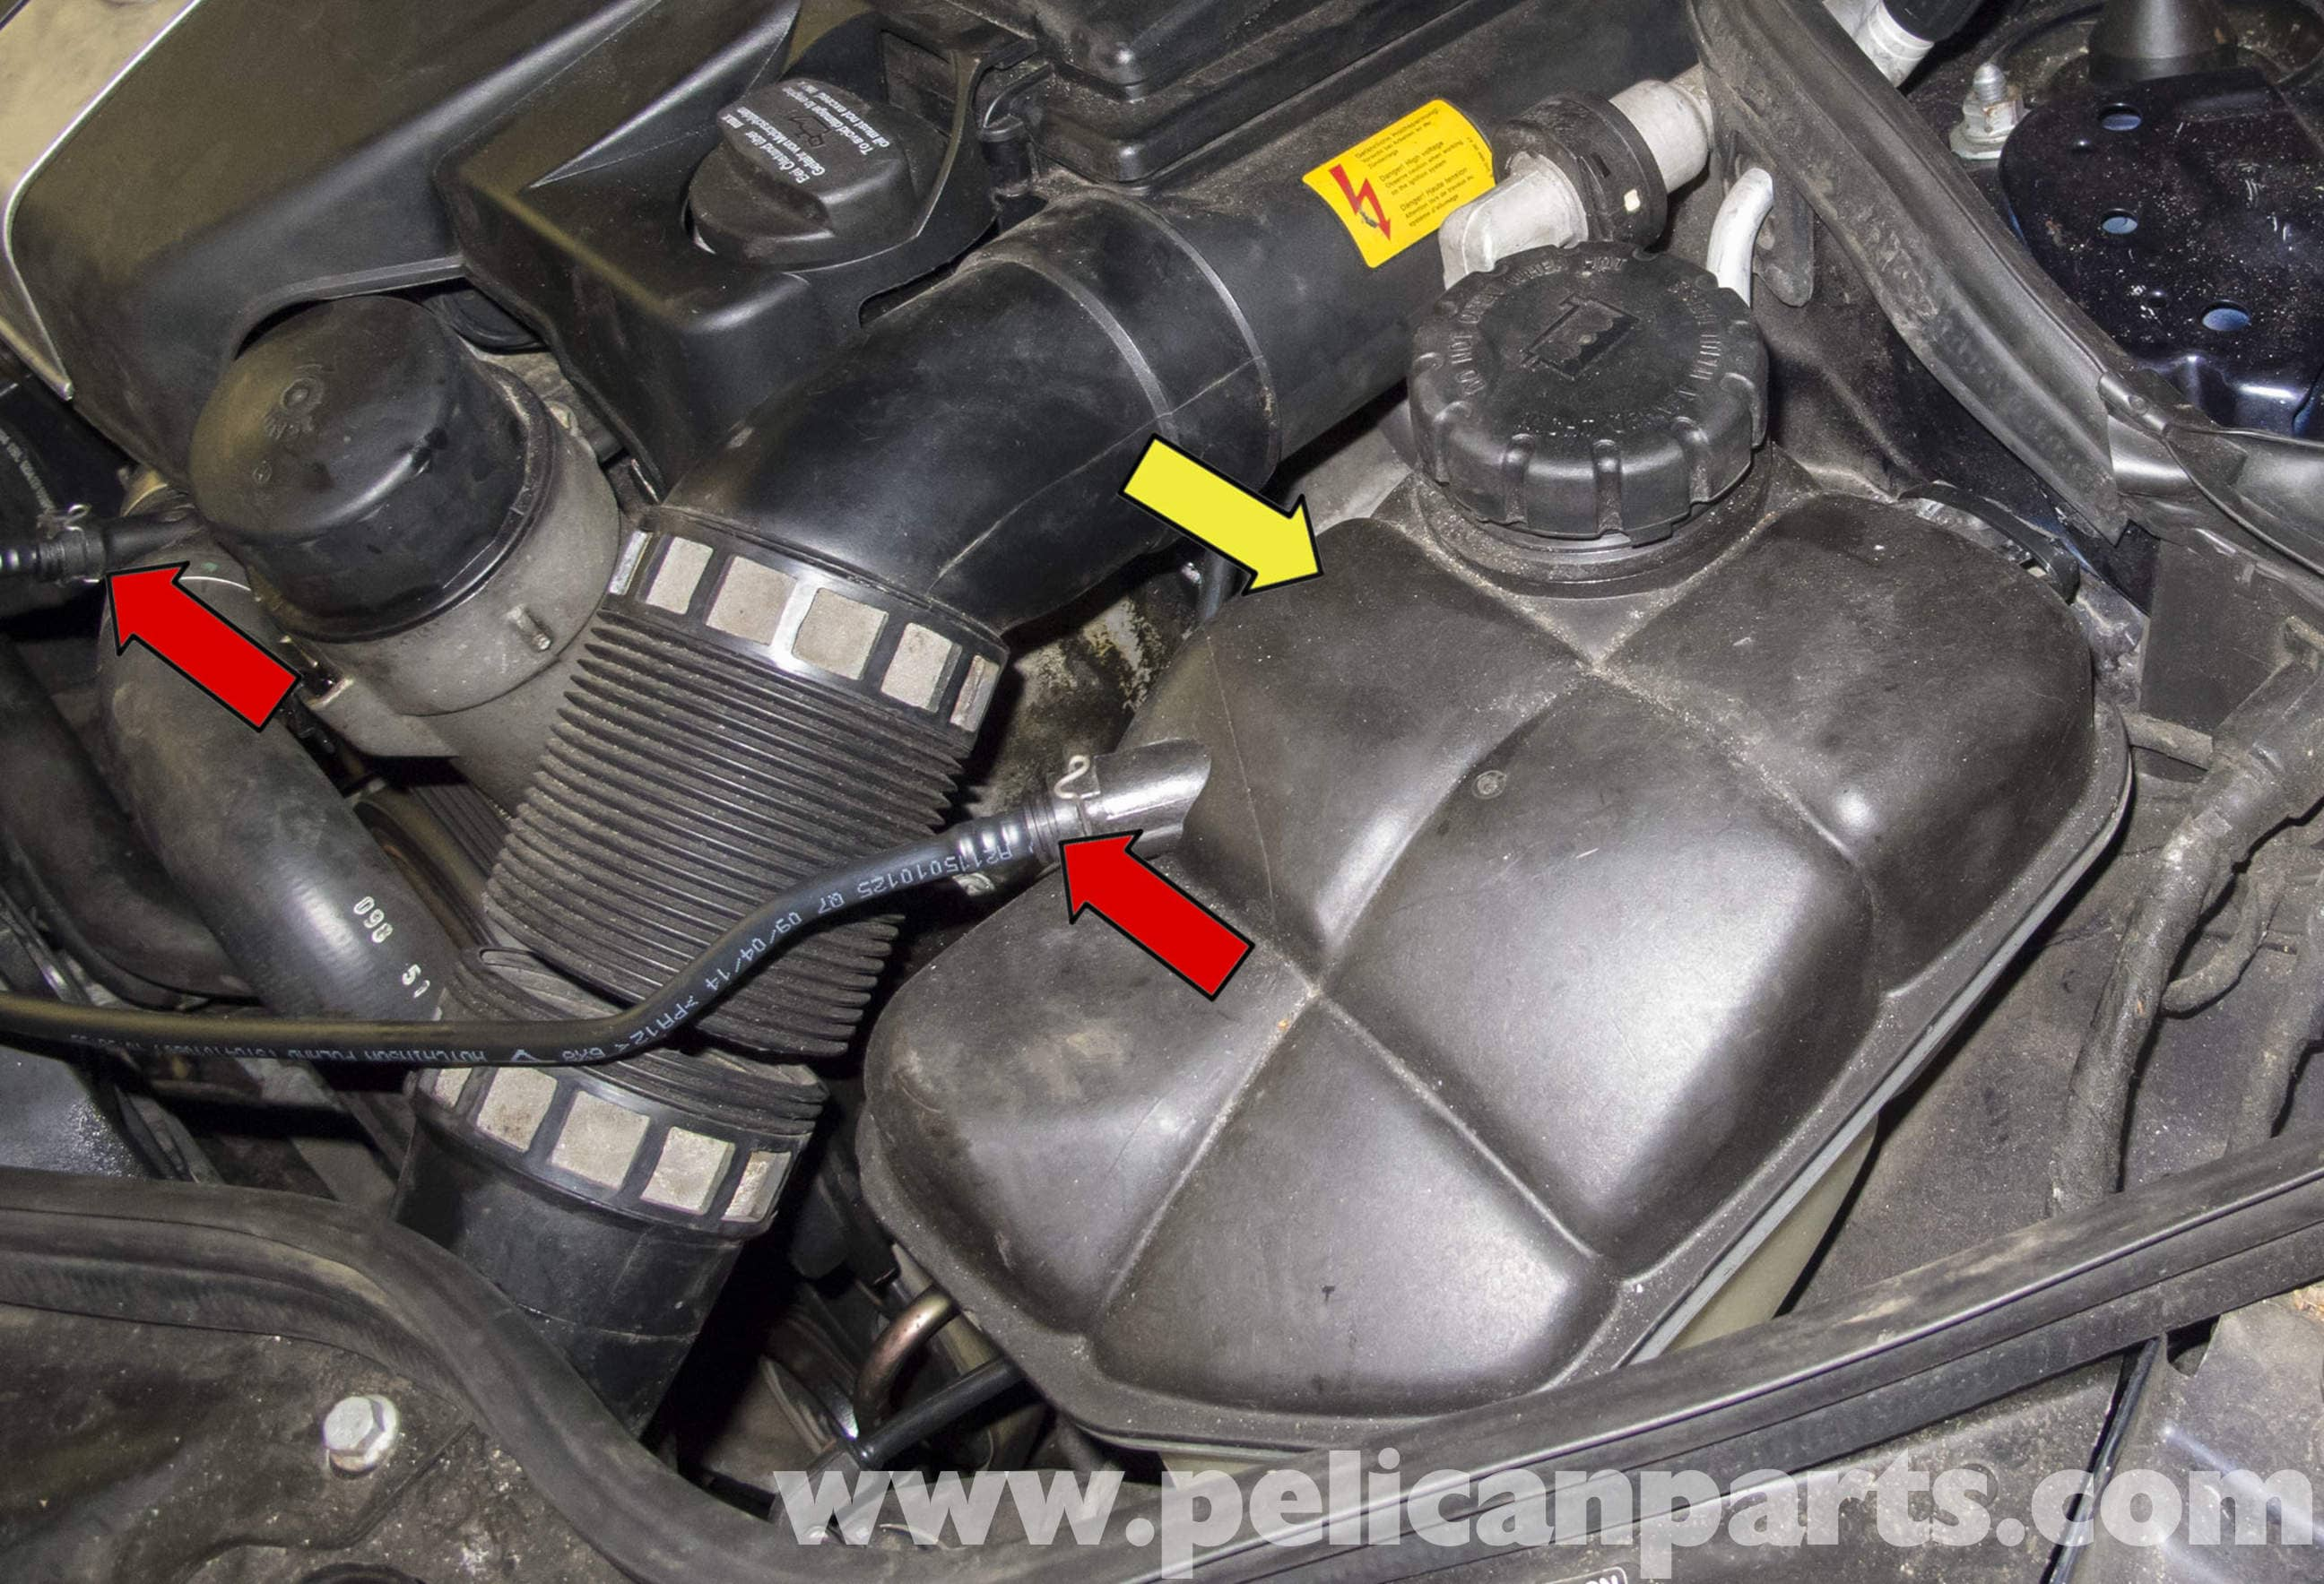 Mercedes benz w211 cooling system leak test 2003 2009 for Mercedes benz coolant